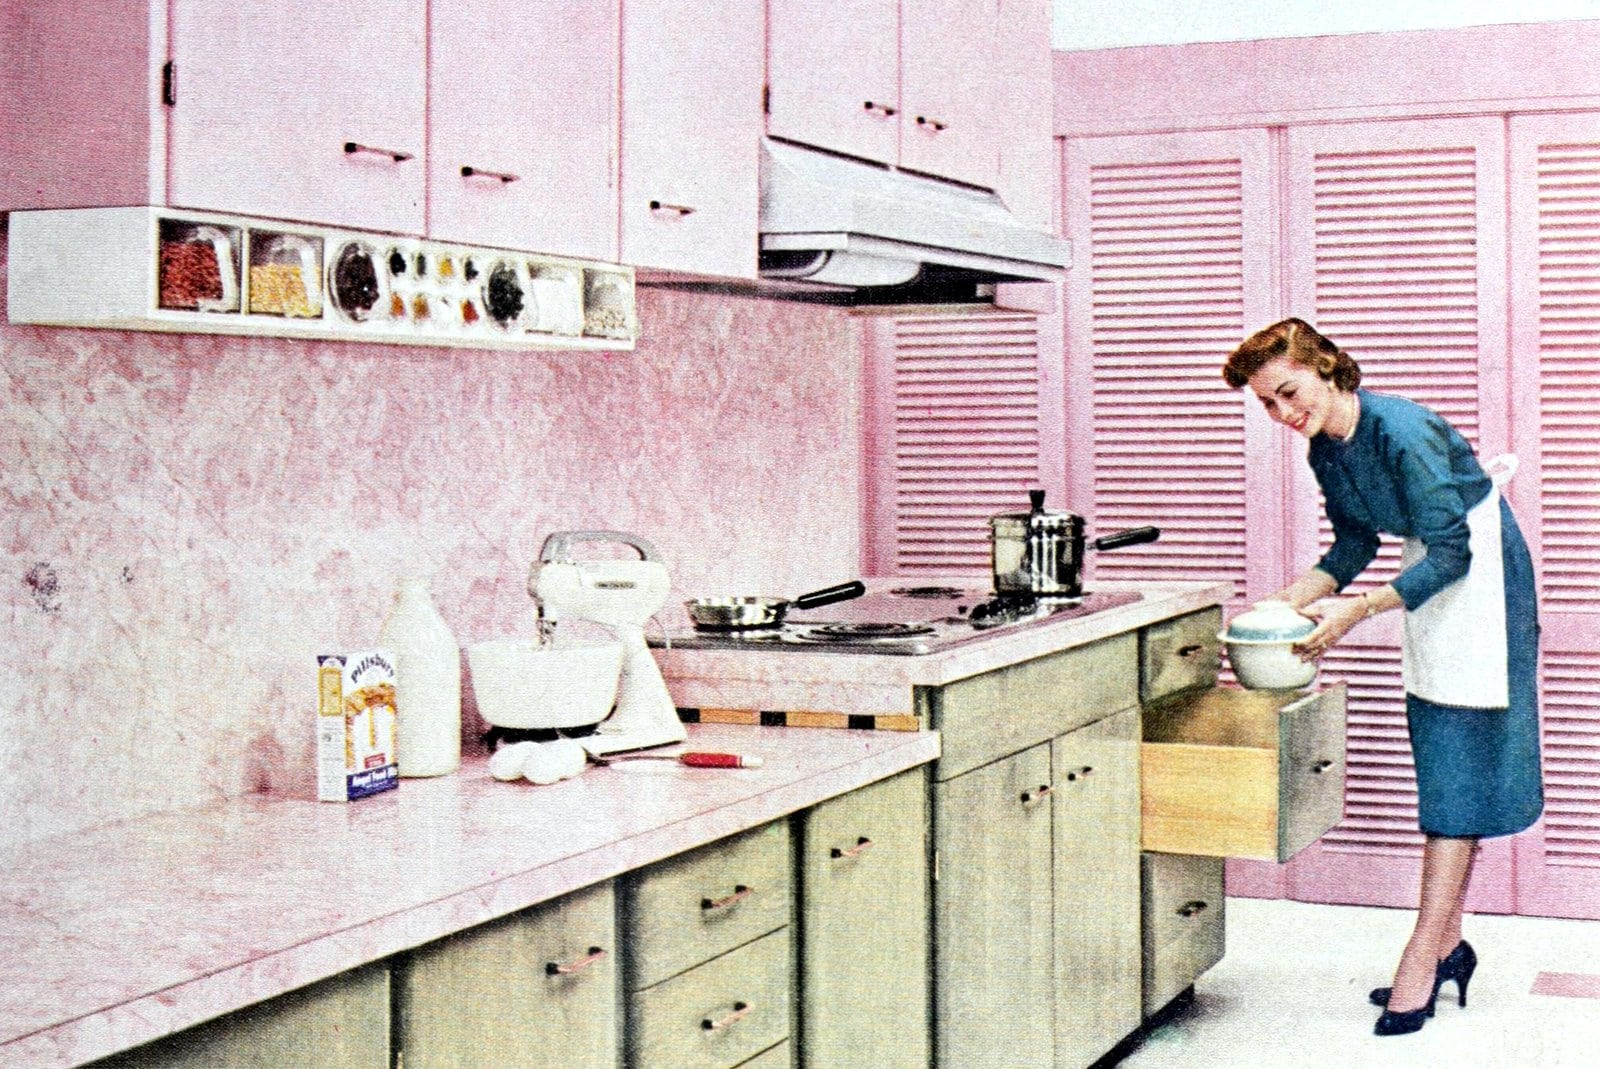 Retro pink kitchens 1950s home decor you don't see much today